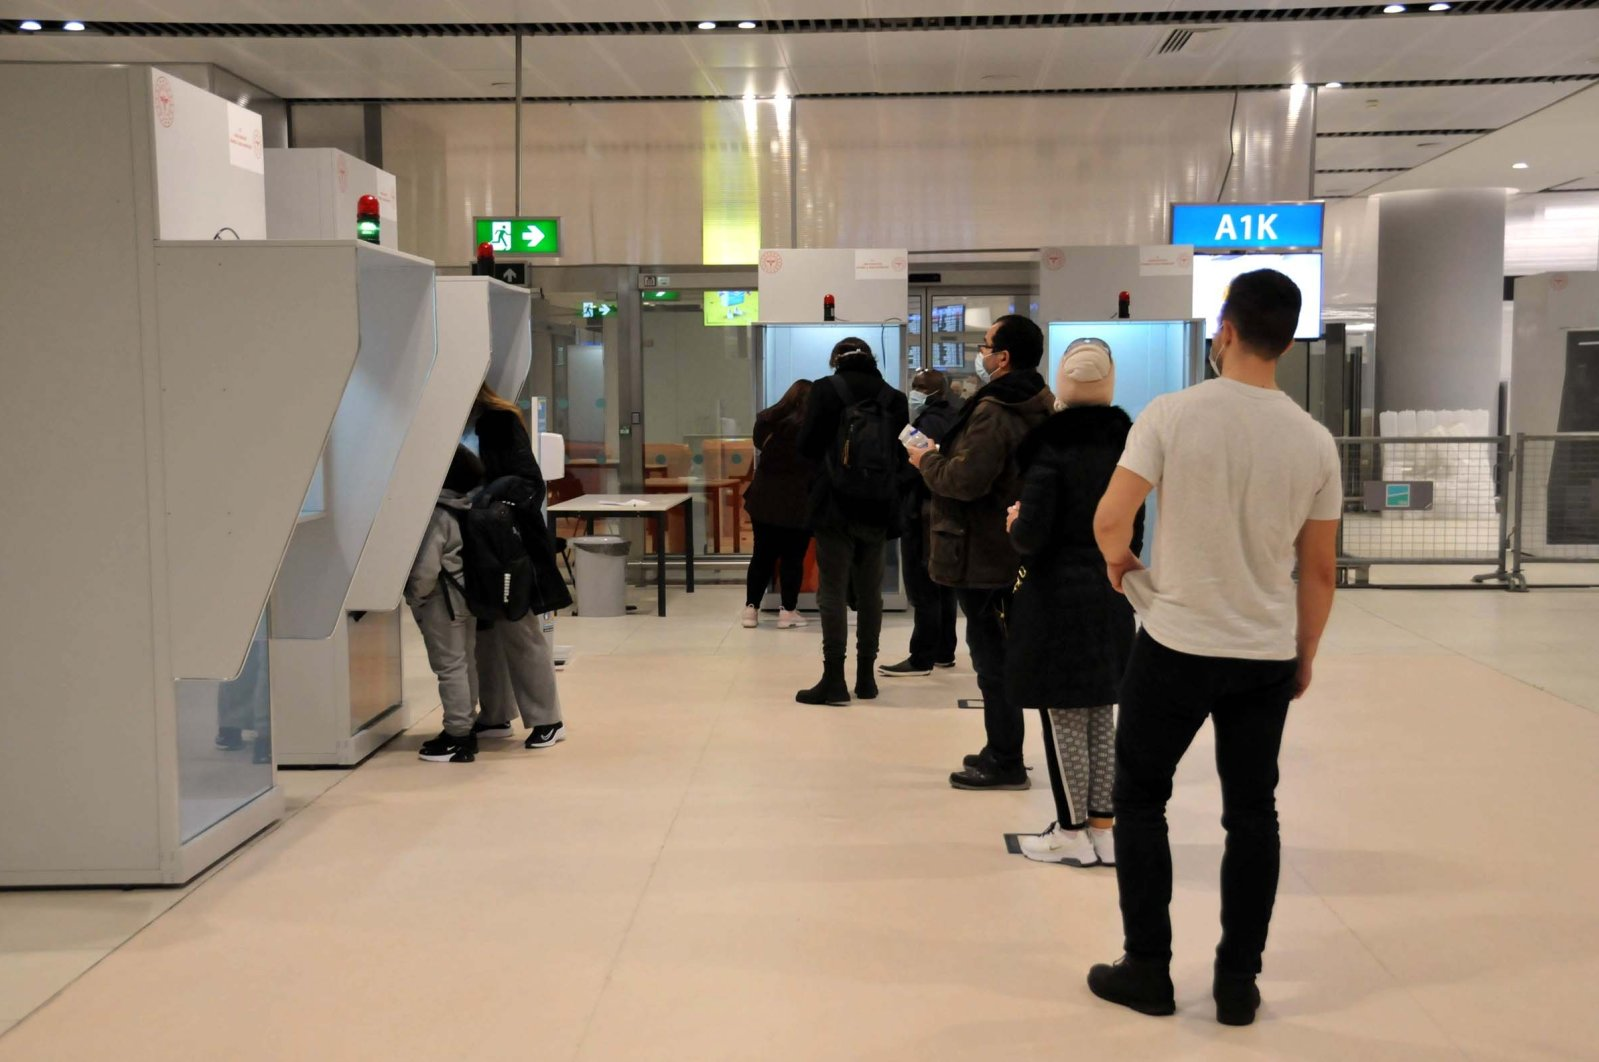 Passengers from London wait to be tested at Istanbul Airport, in Istanbul, Turkey, Dec. 21, 2020. (DHA PHOTO)